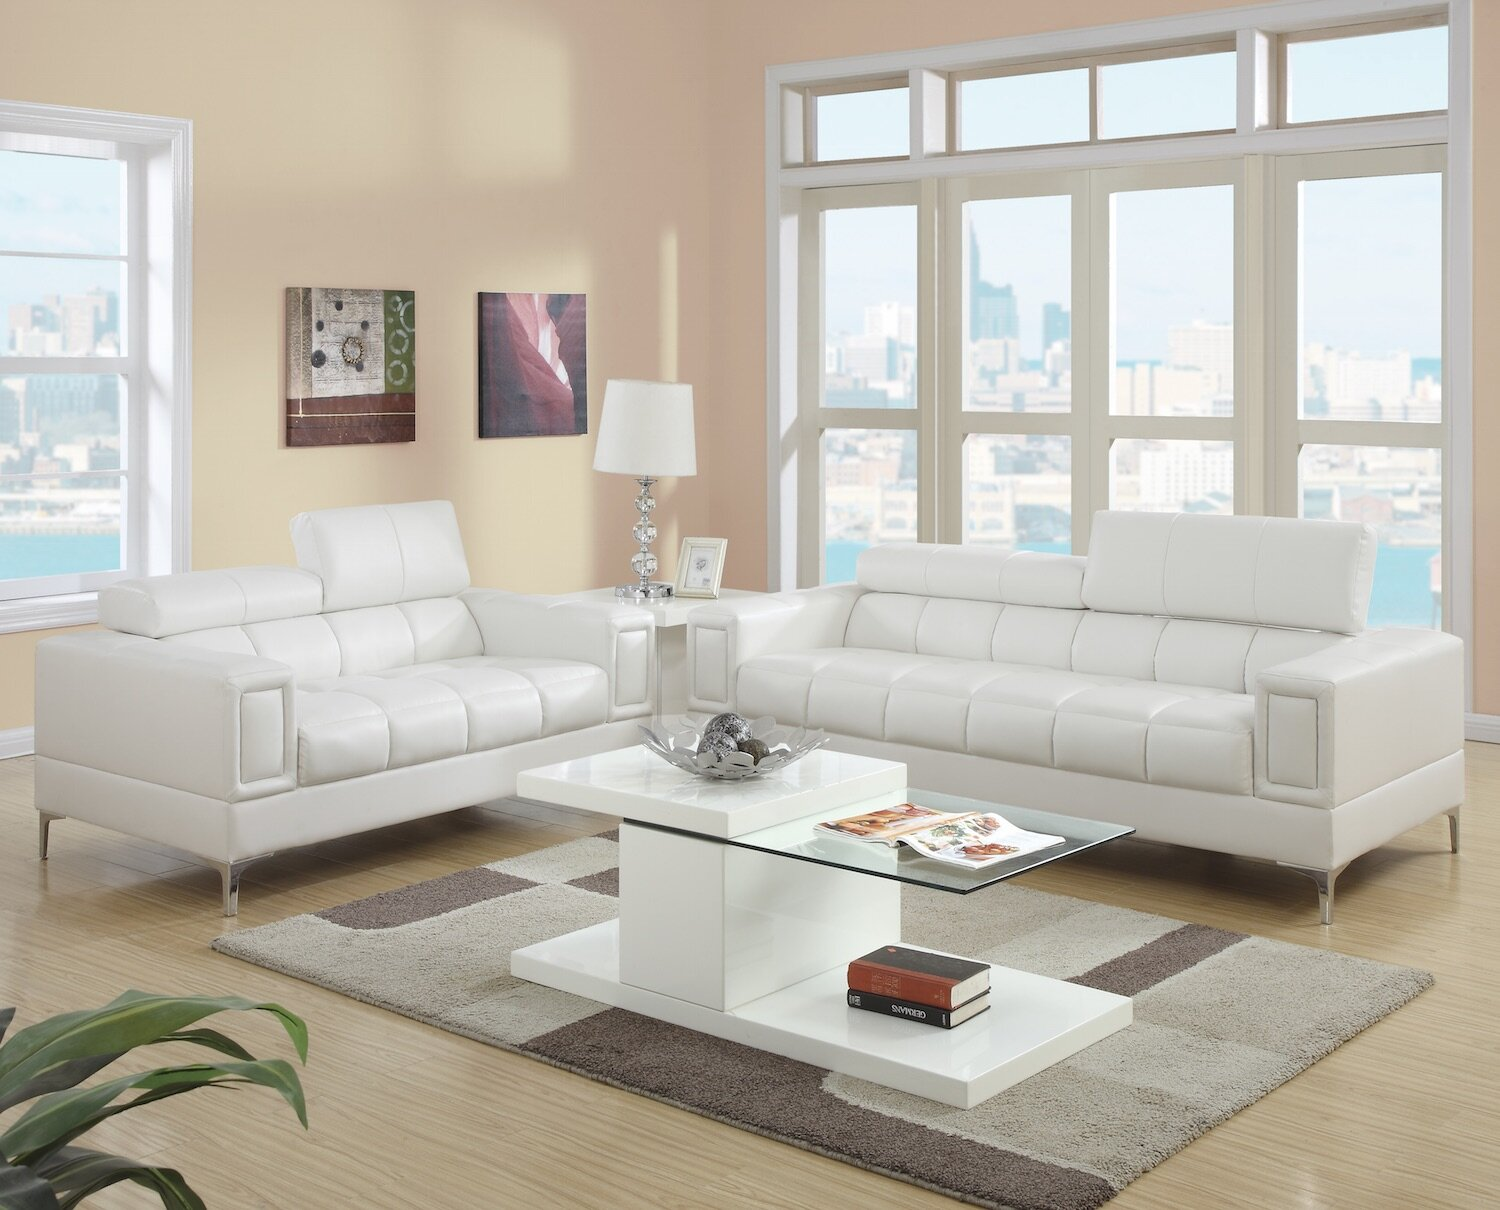 Ankeny 2 Piece Living Room Set